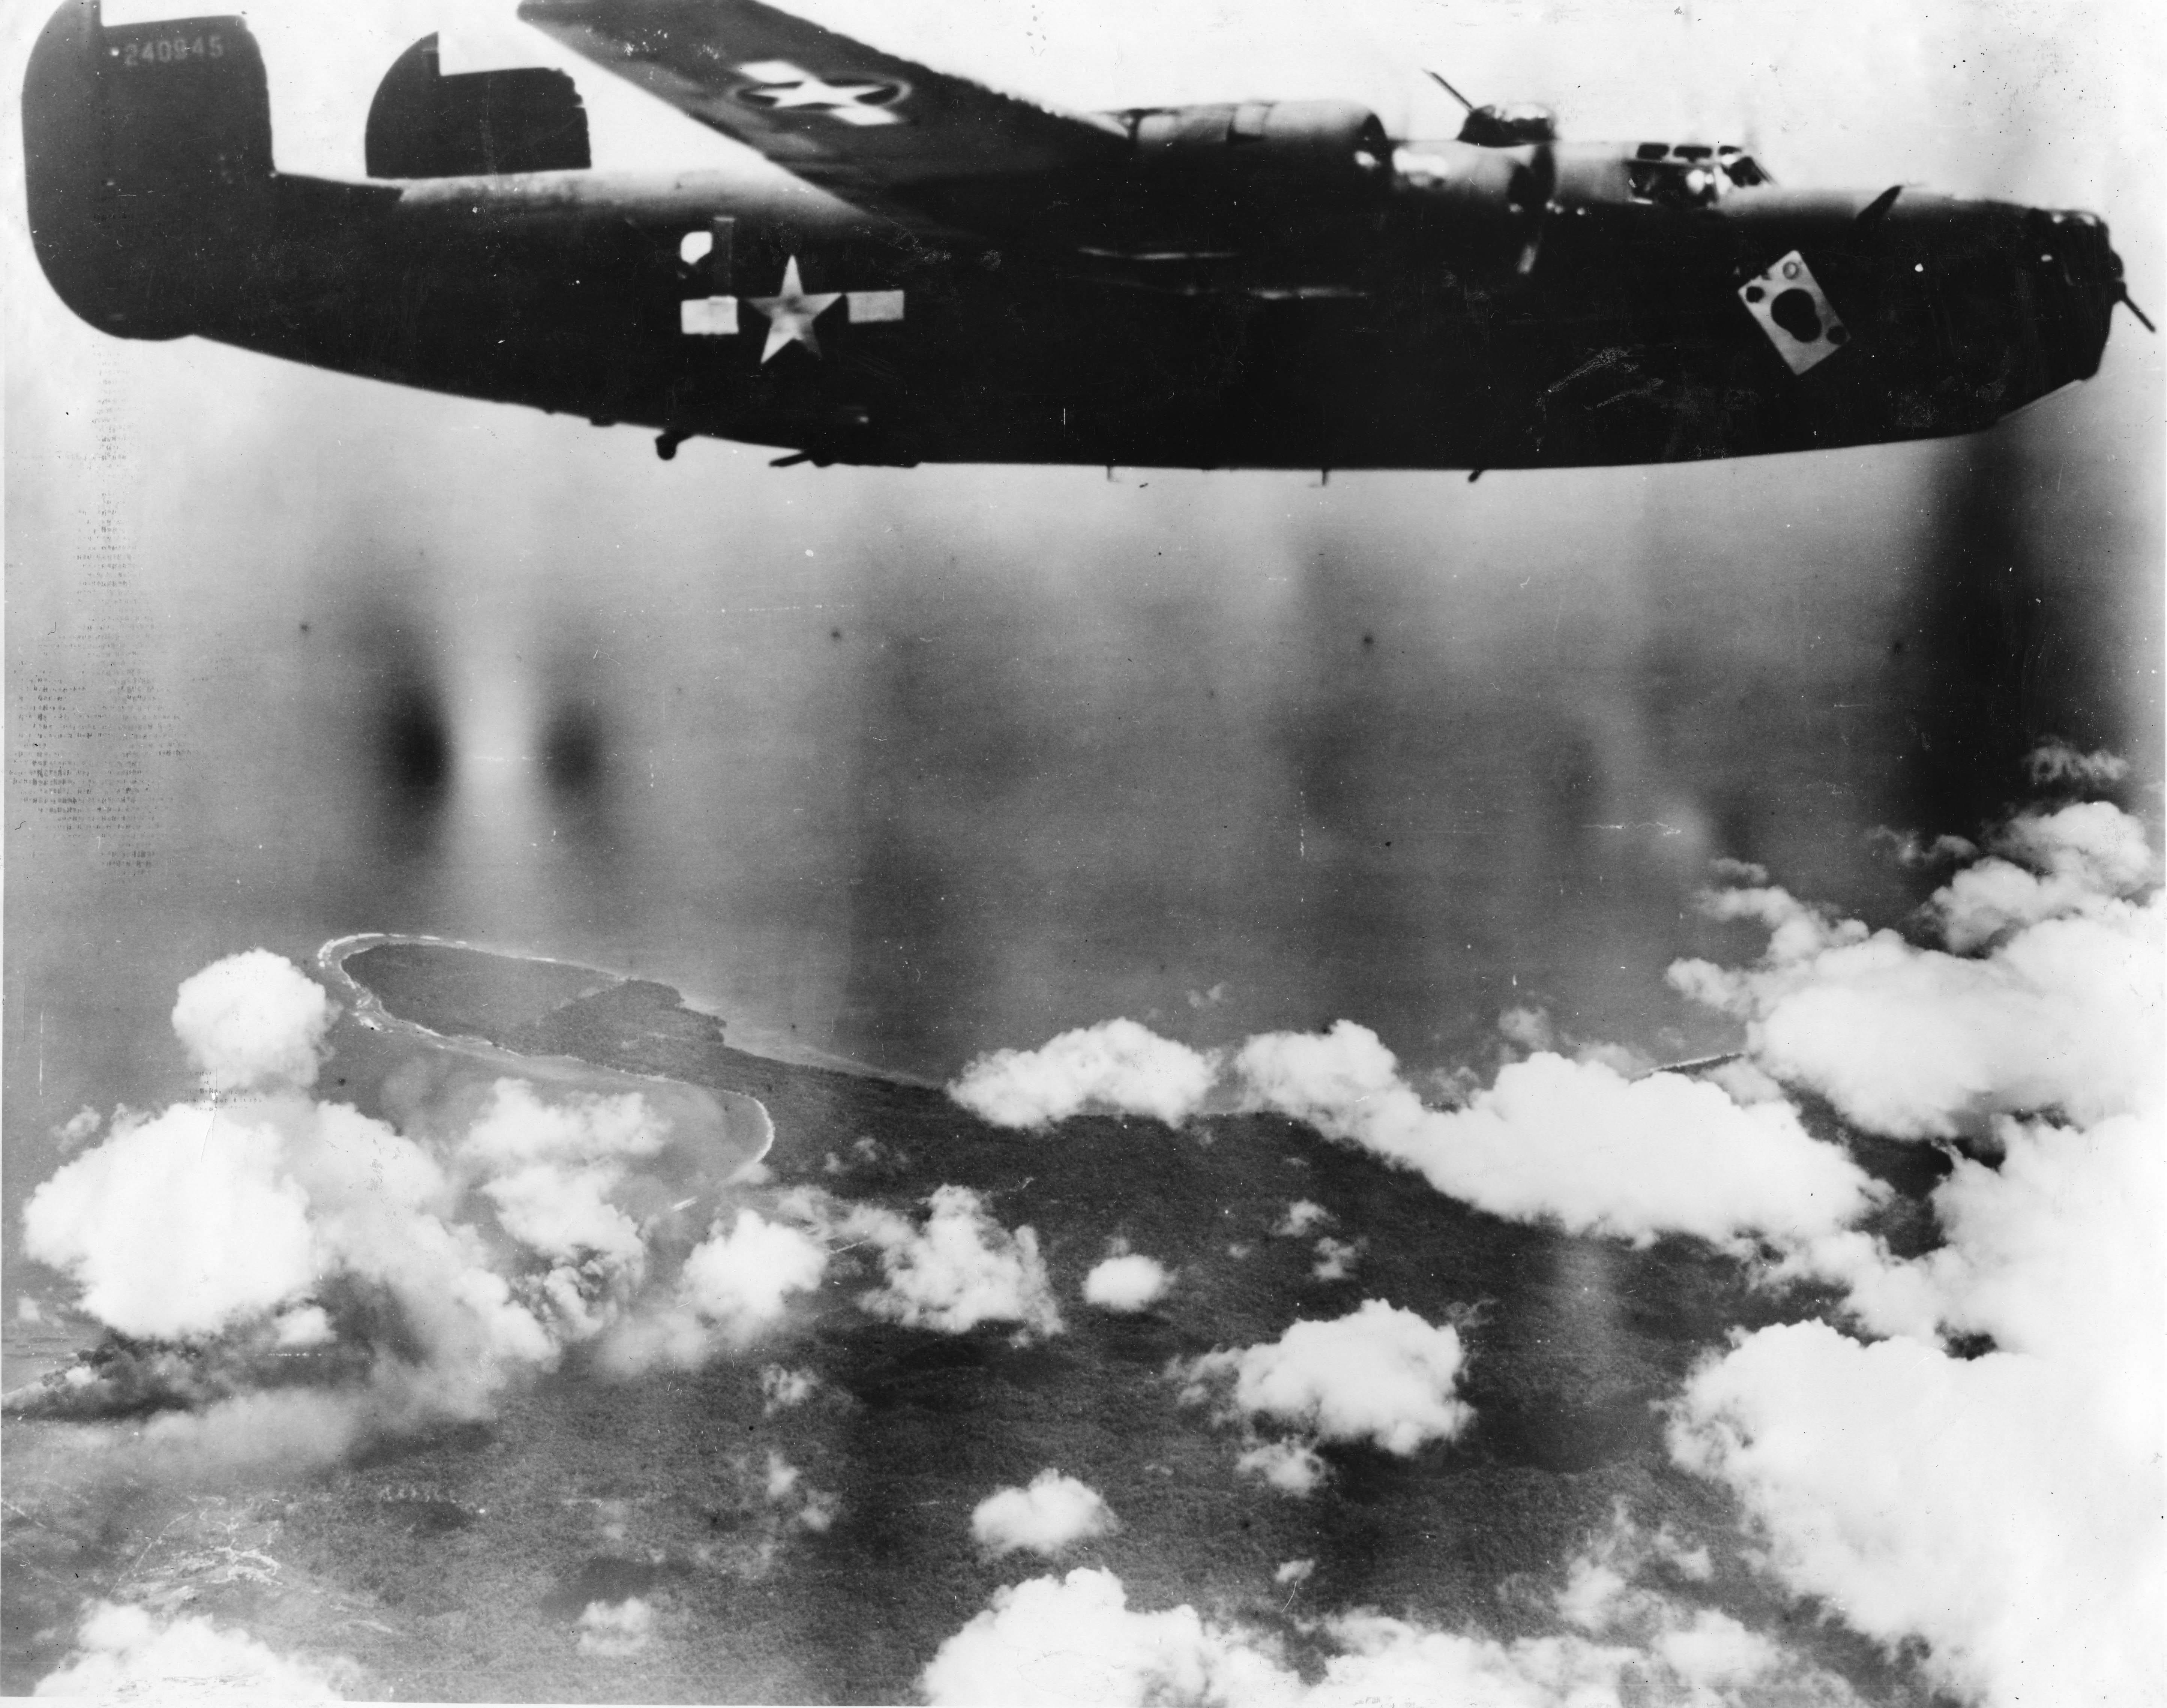 Ace O' Spades - B24 - 43rd Bomb Group - 403rd Squadron - Serial #42-40945 - PH00006323 (Frederick German Collection)